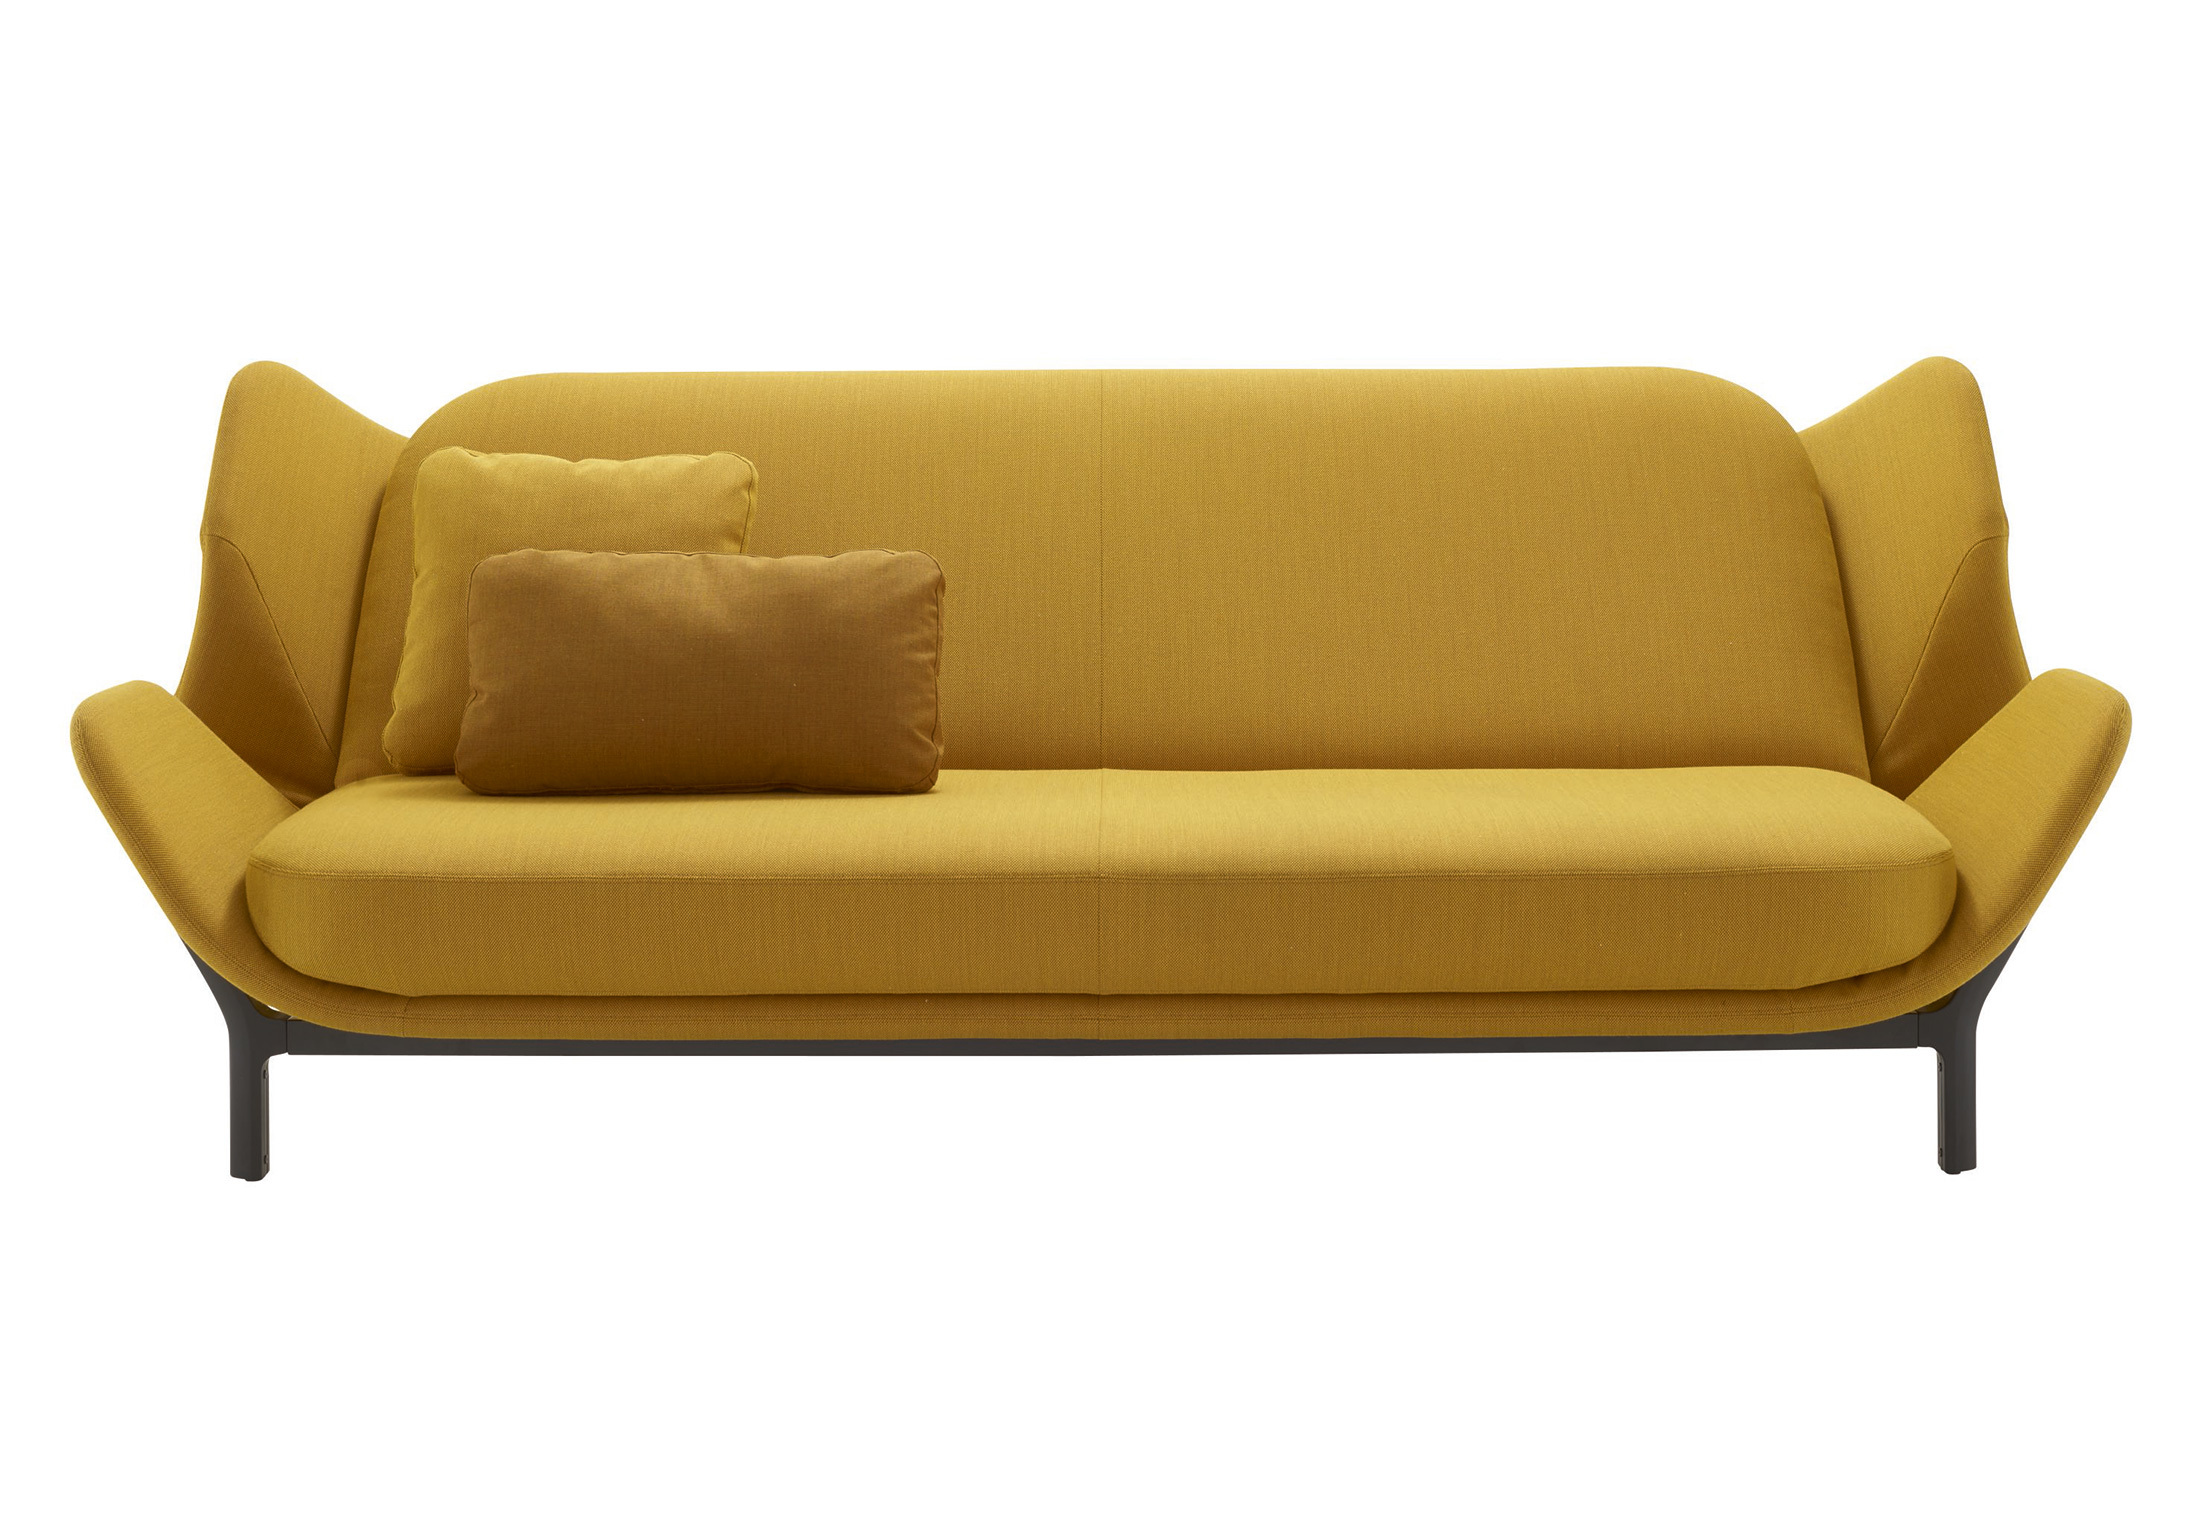 Yellow Schlafsofas Clam By Ligne Roset | Stylepark